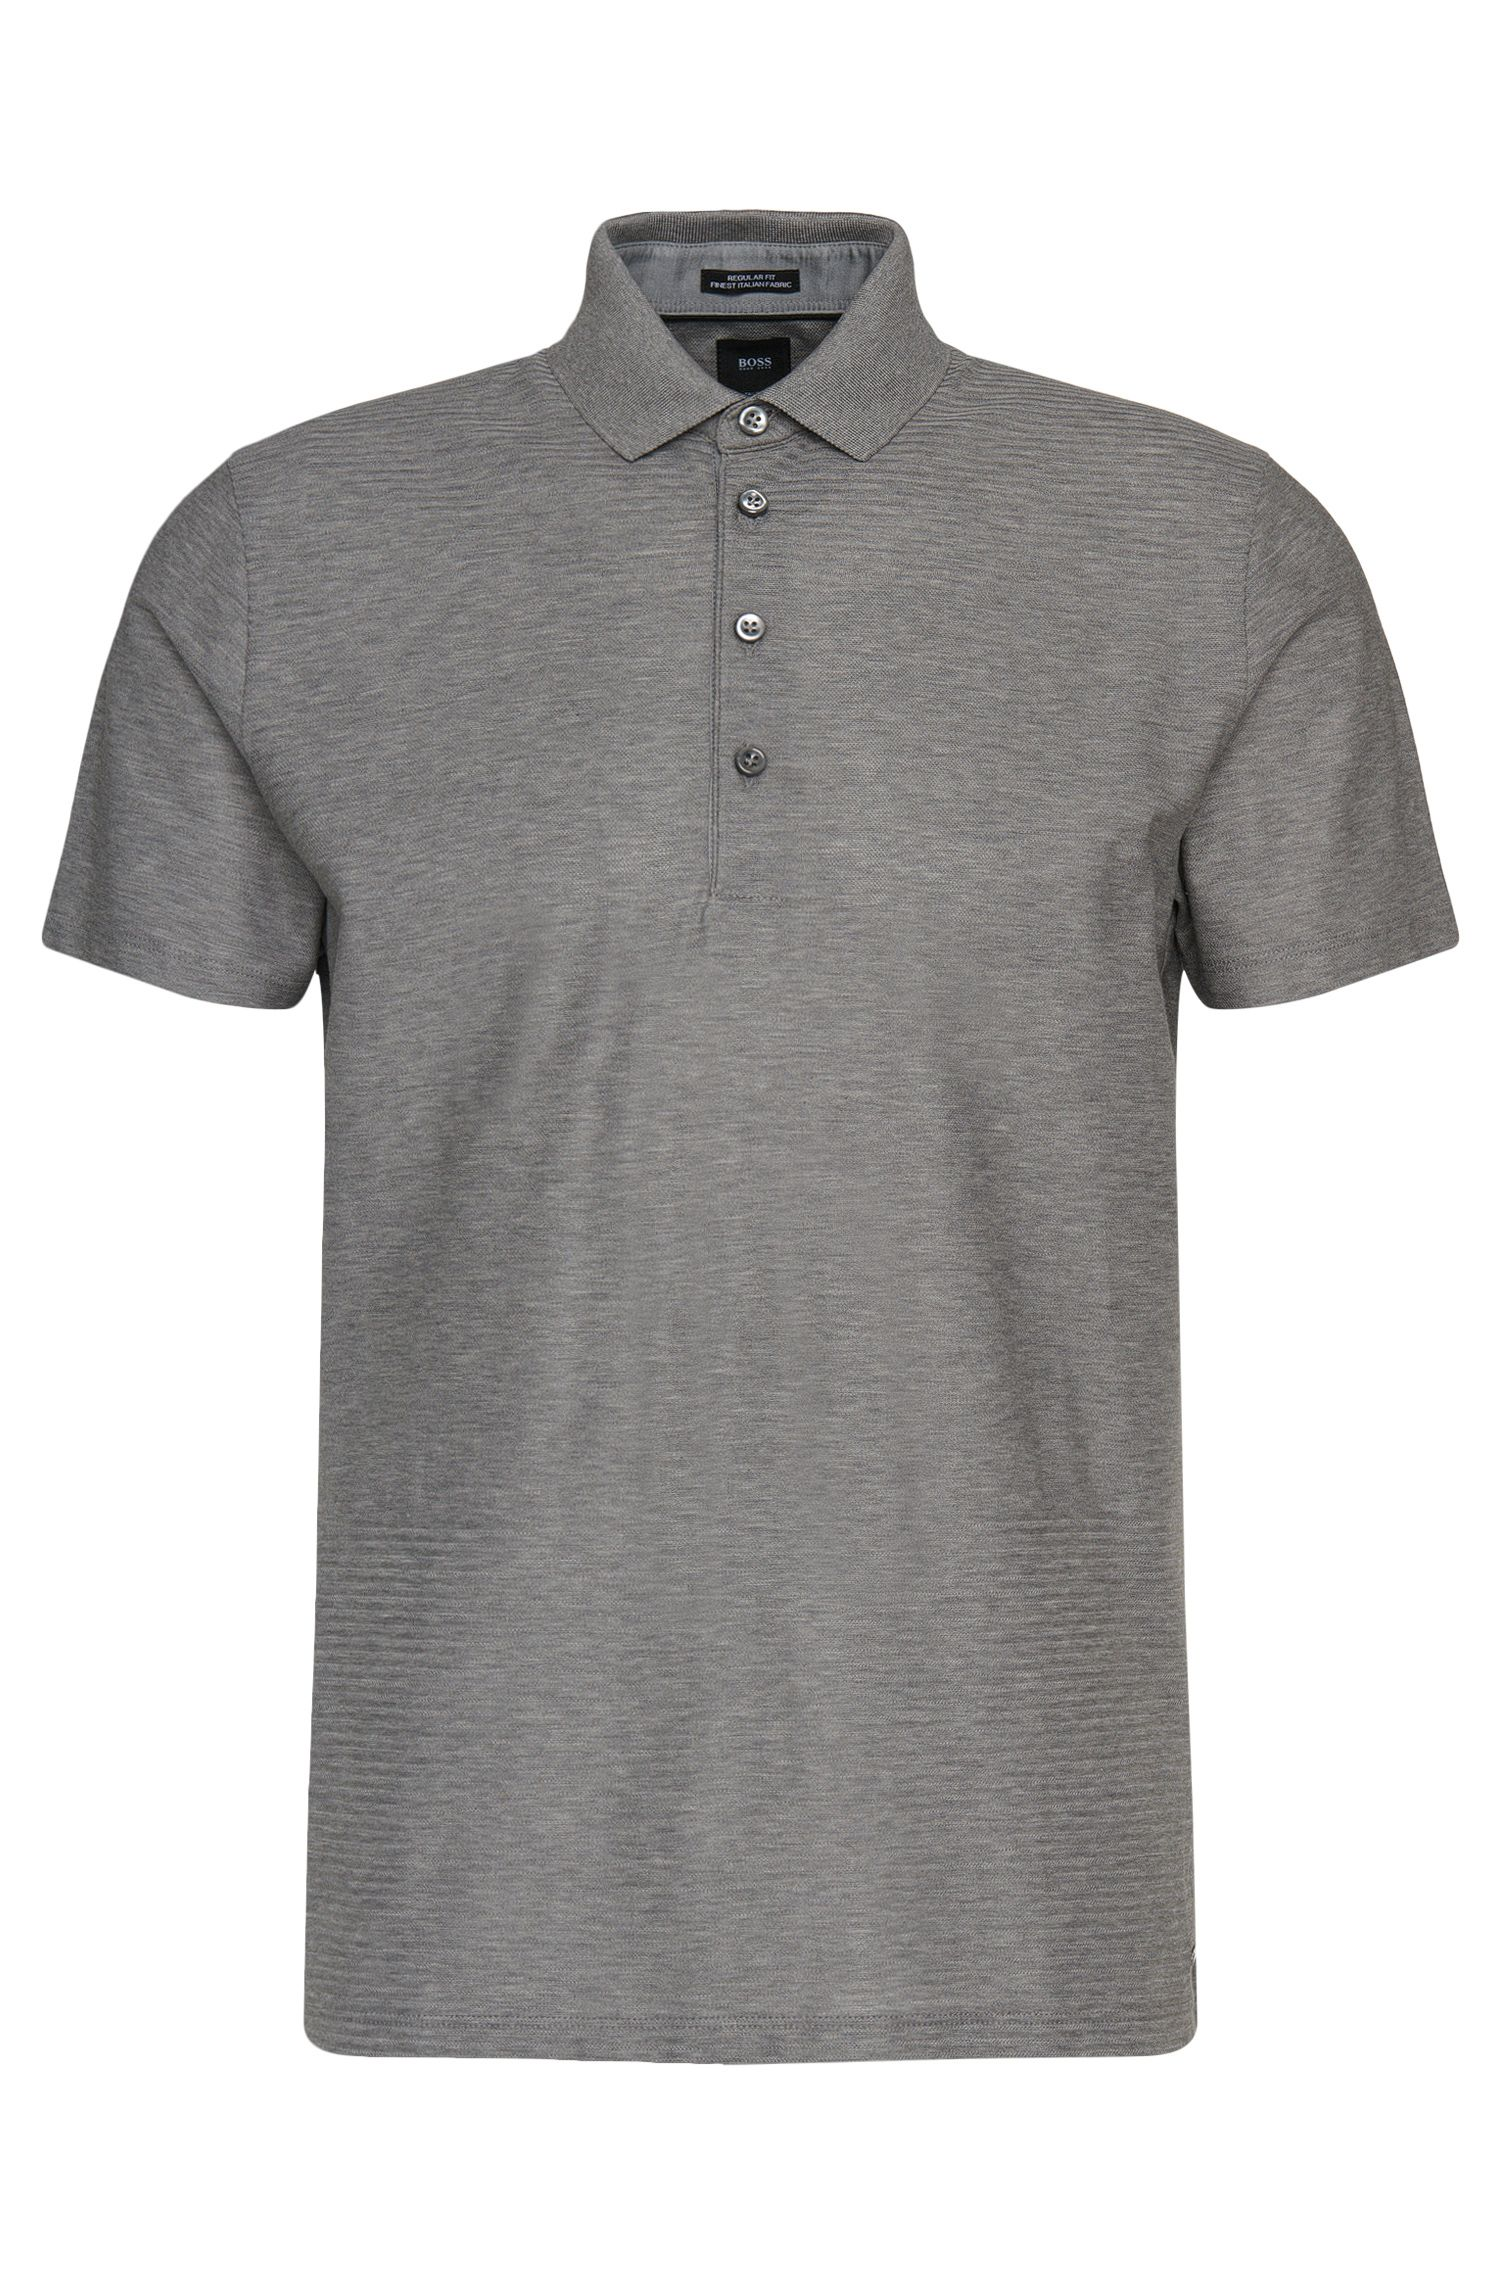 Regular-Fit Tailored Poloshirt aus Baumwolle mit grafischem Struktur-Muster: 'T-Perry 10'